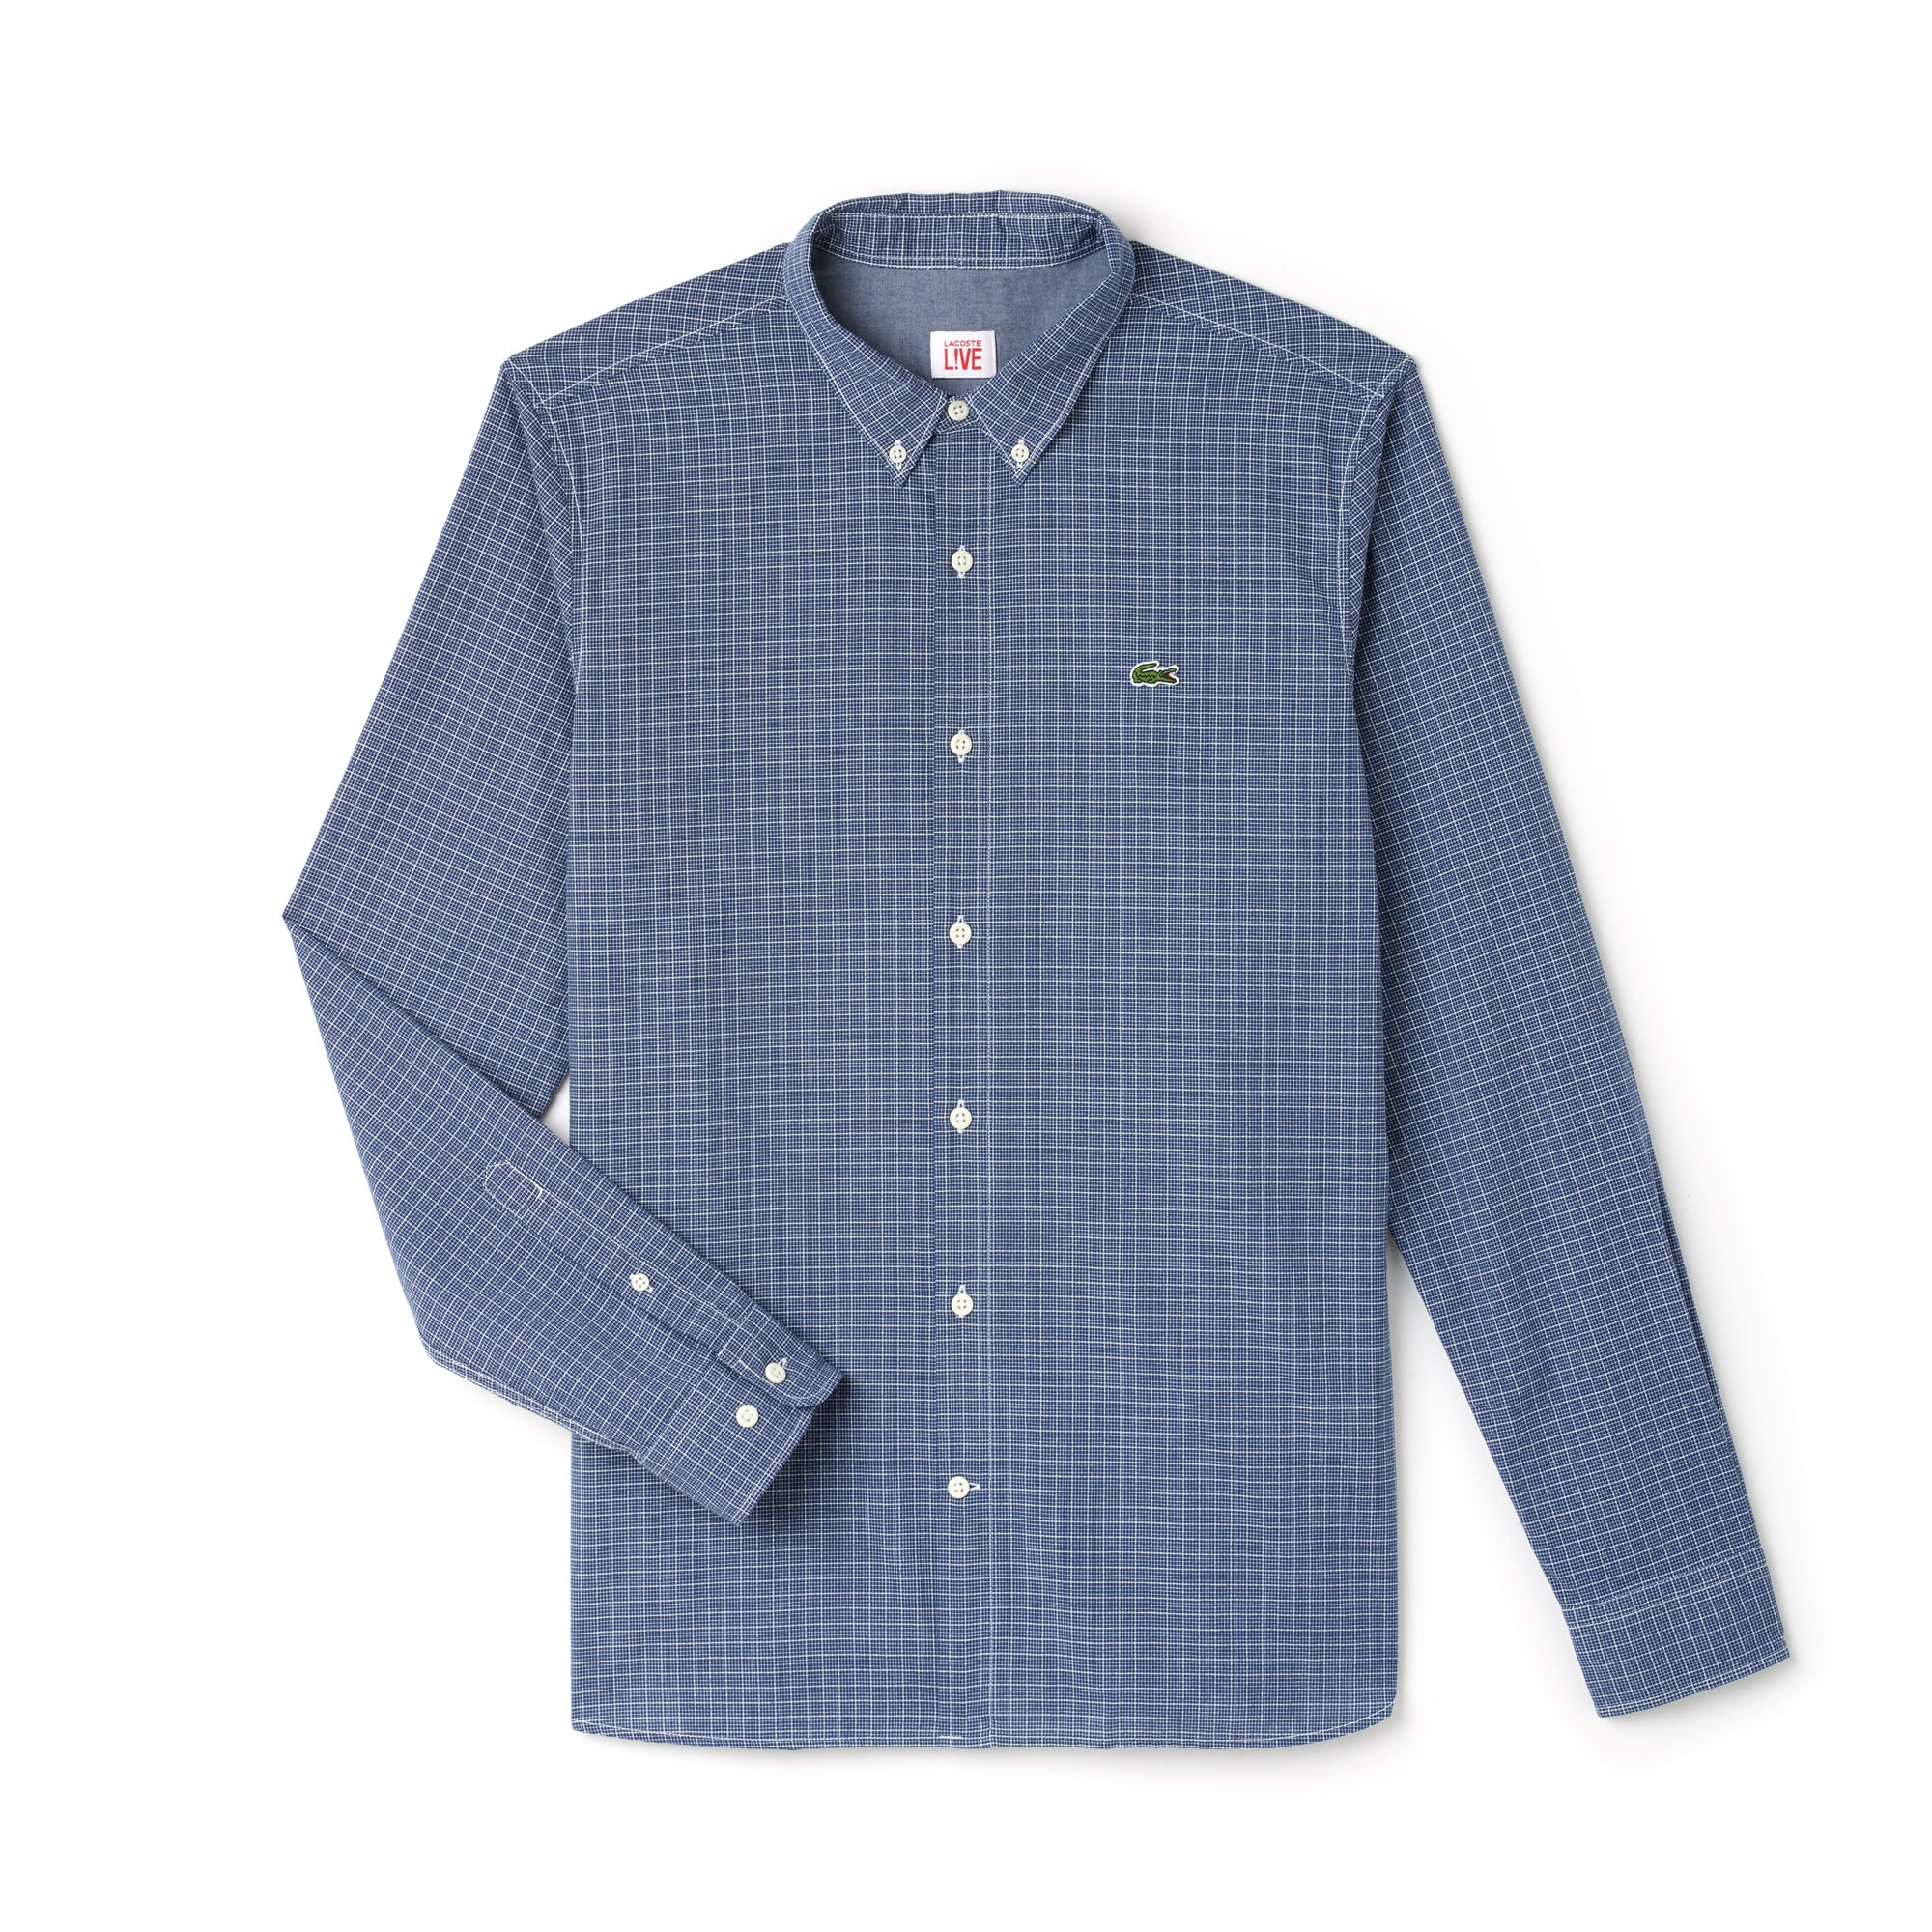 Men's Lacoste LIVE Slim Fit Check Salt-And-Pepper Cotton Shirt